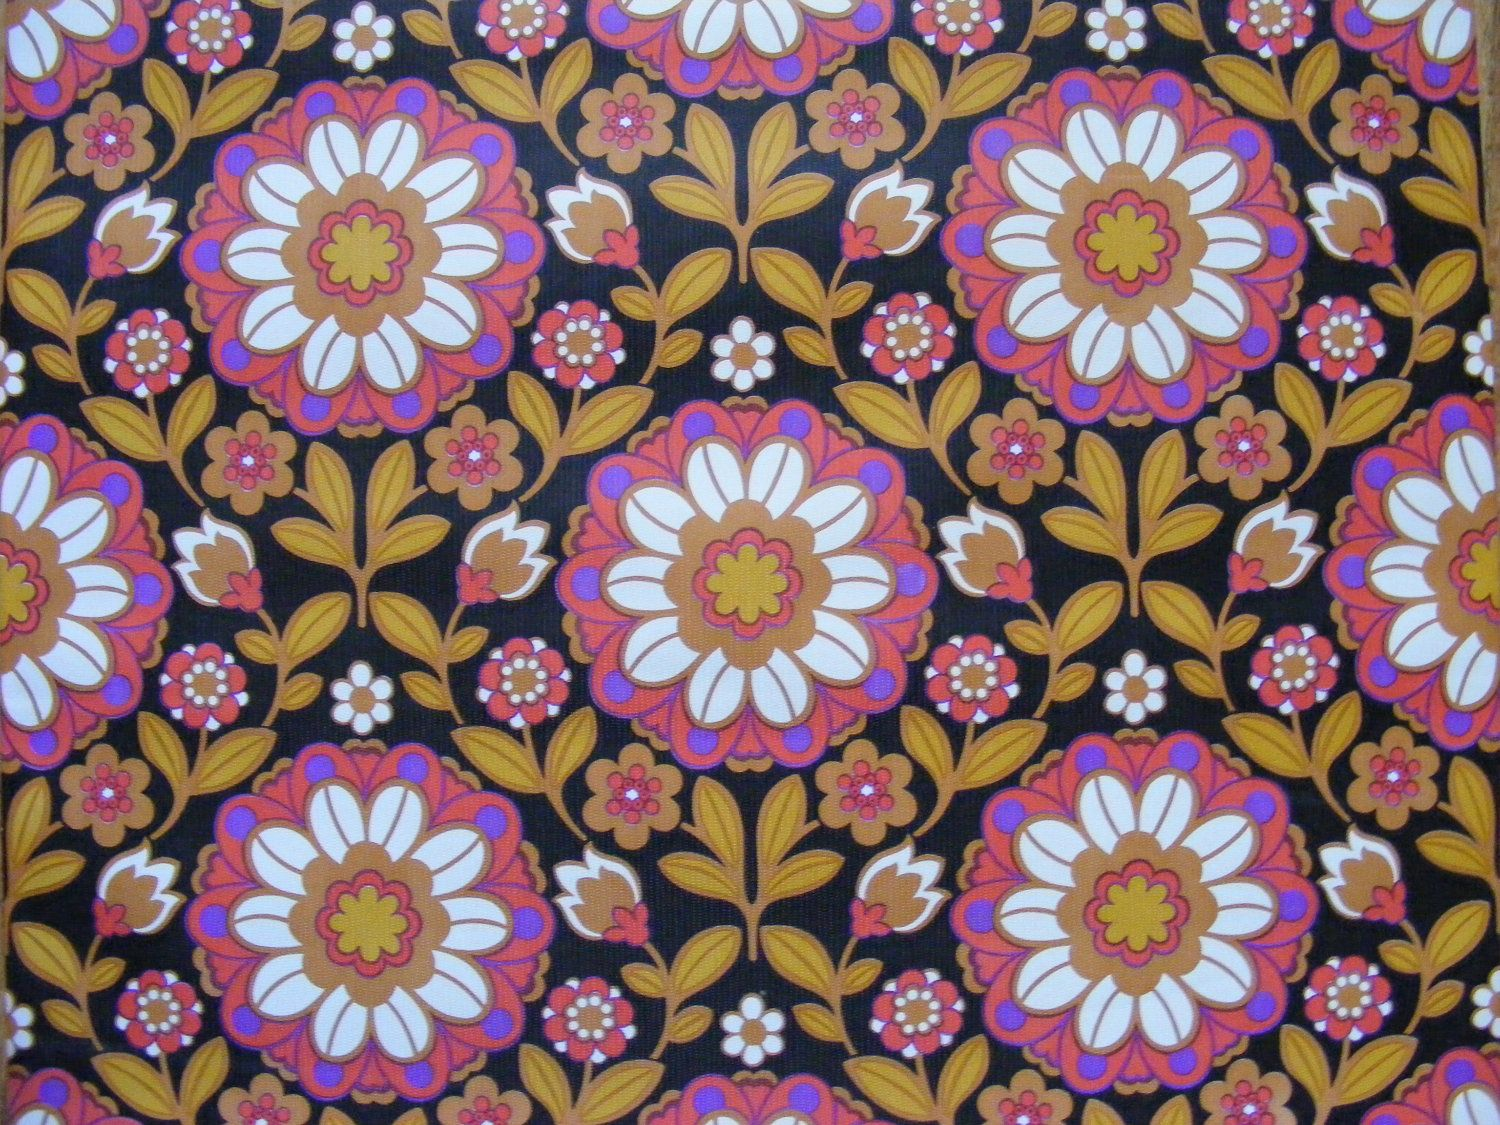 Meter Vintage Wallpaper Sanderson Heavy Vinyl Coating S S - Arts and crafts fabric patterns